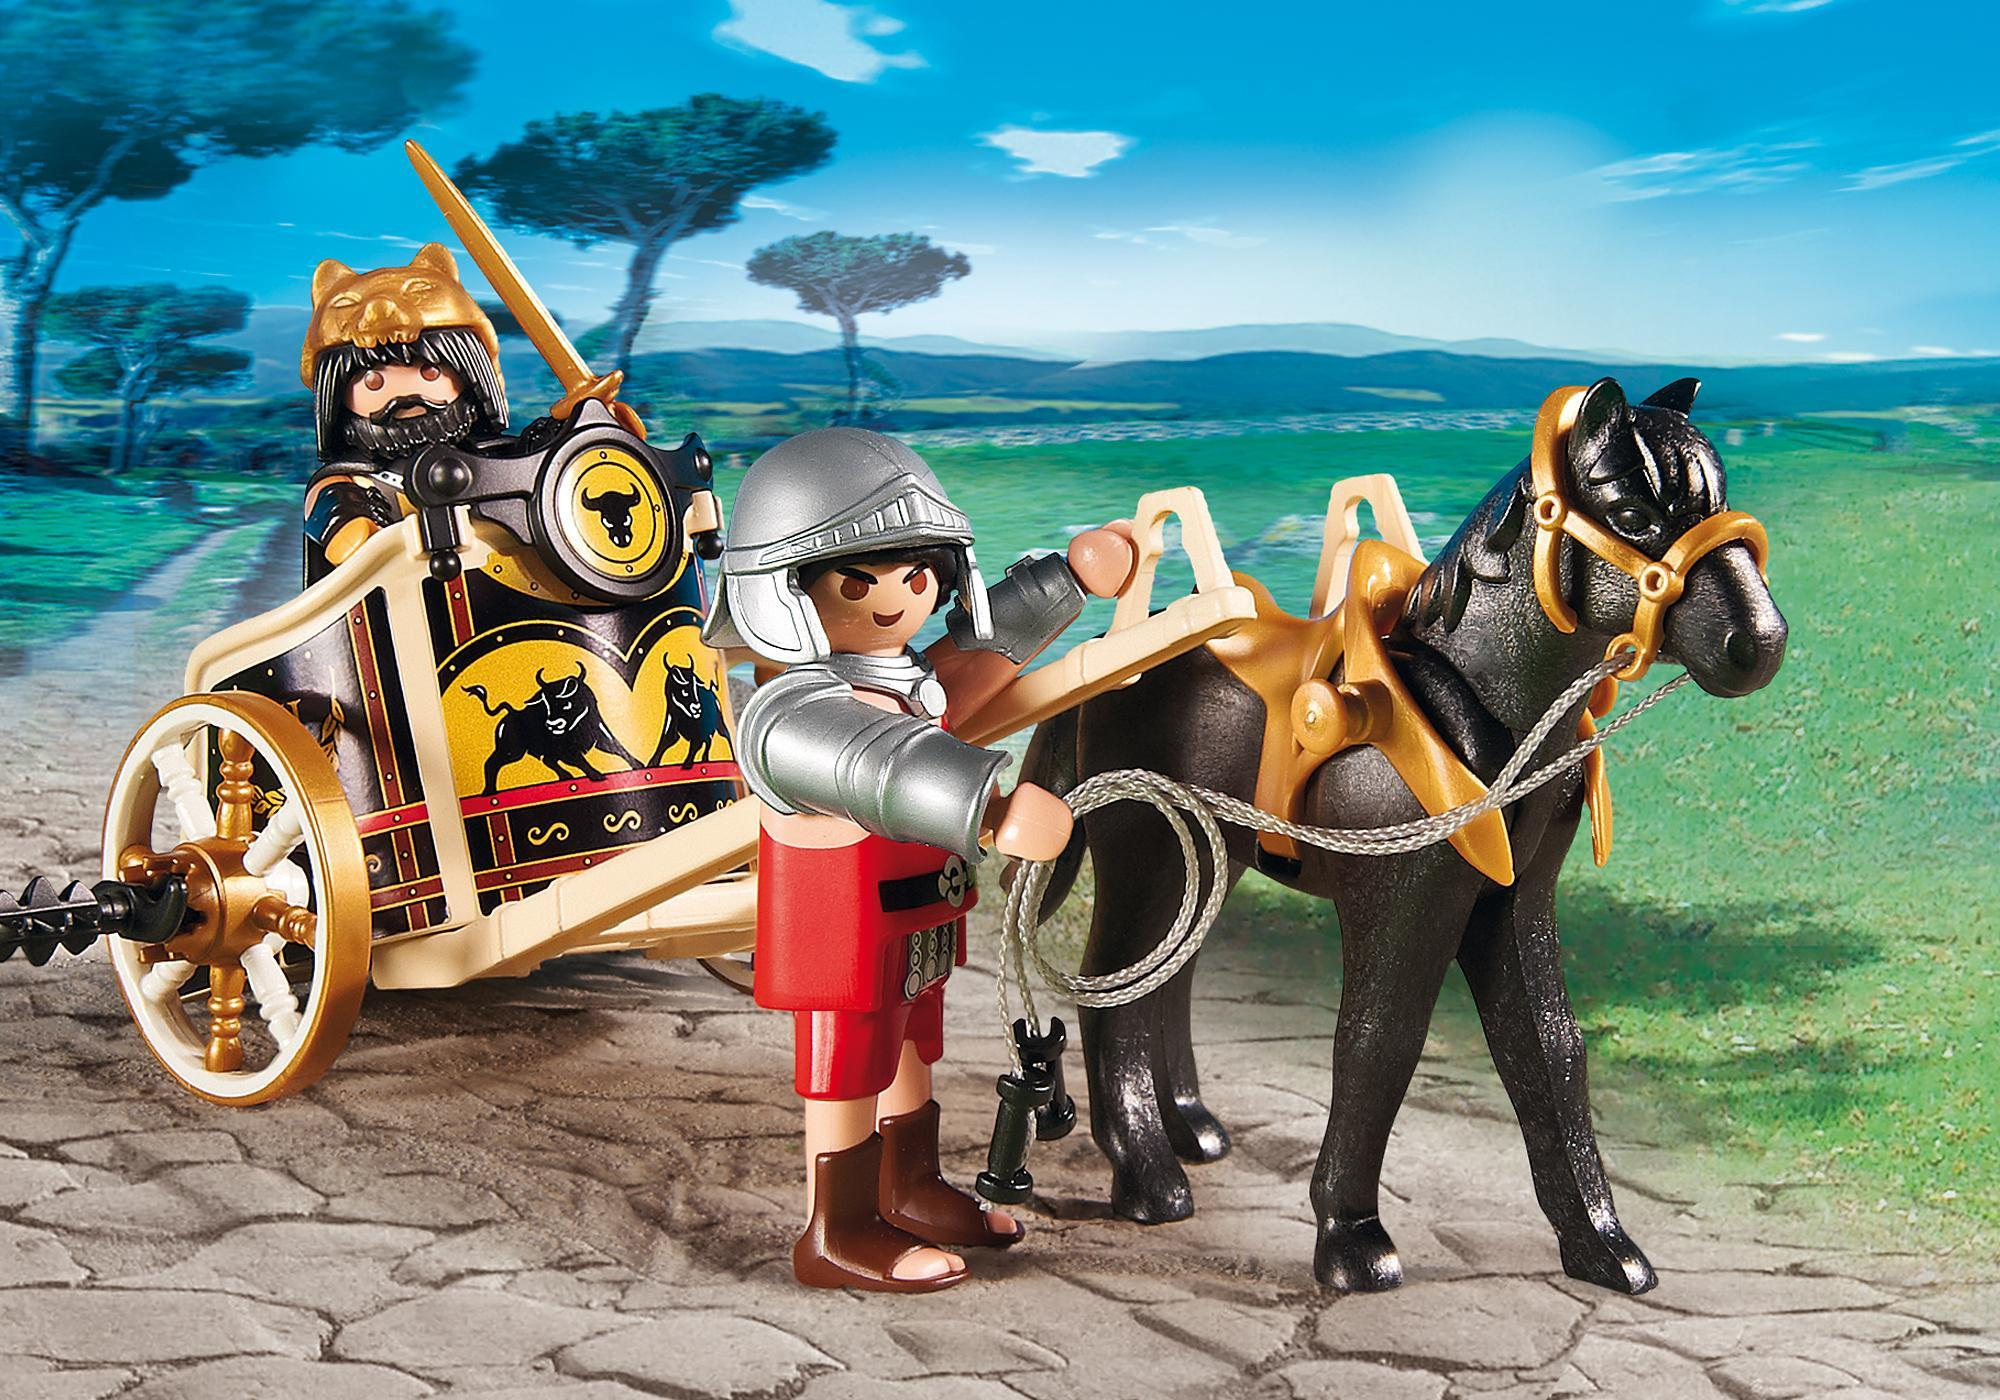 http://media.playmobil.com/i/playmobil/6868_product_extra1